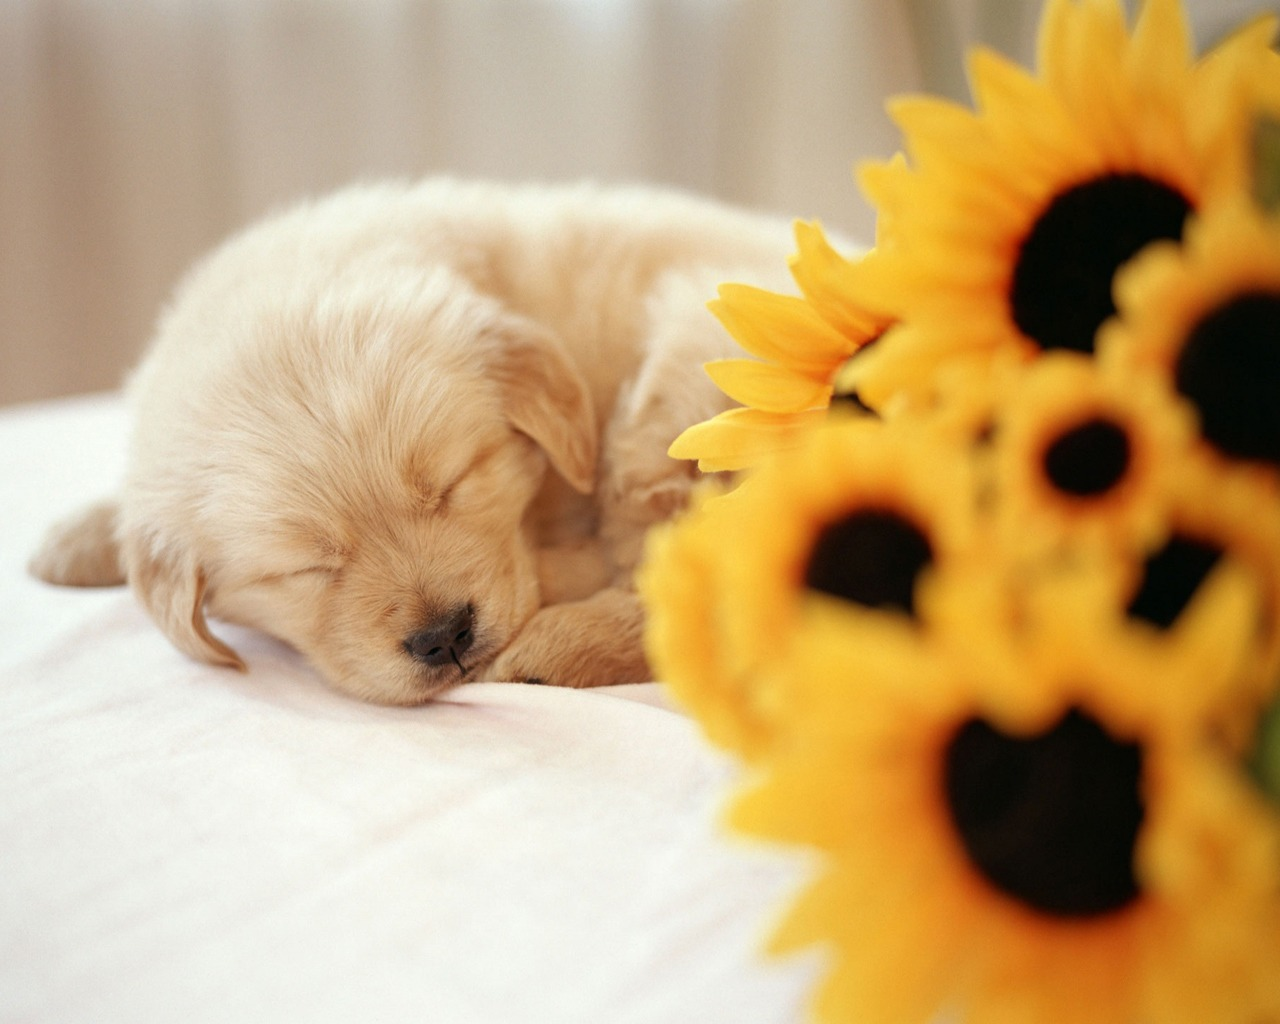 Fall Wallpaper With Dogs Sleeping puppy wallpaper dogs 1280x1024